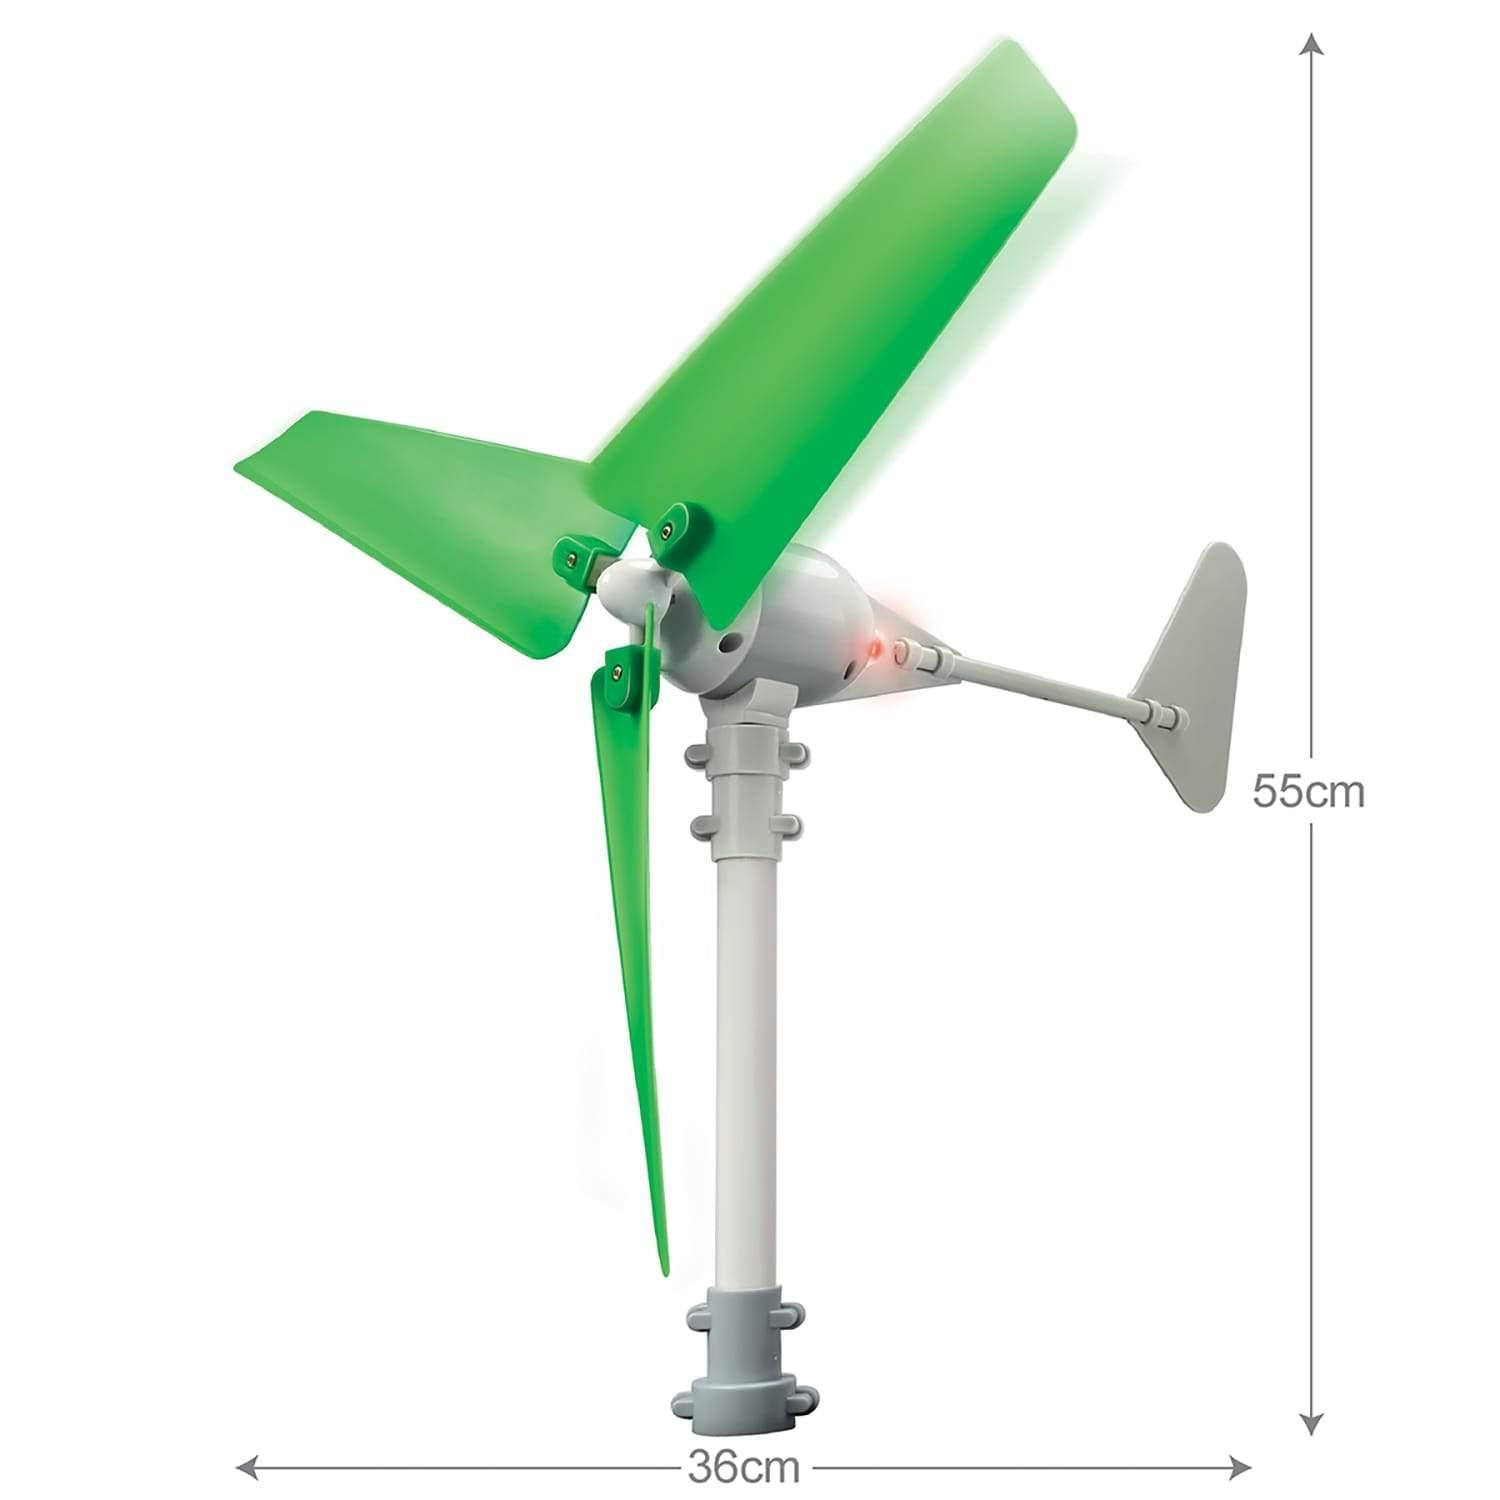 Build Your Own Wind Turbine Science Kit-3